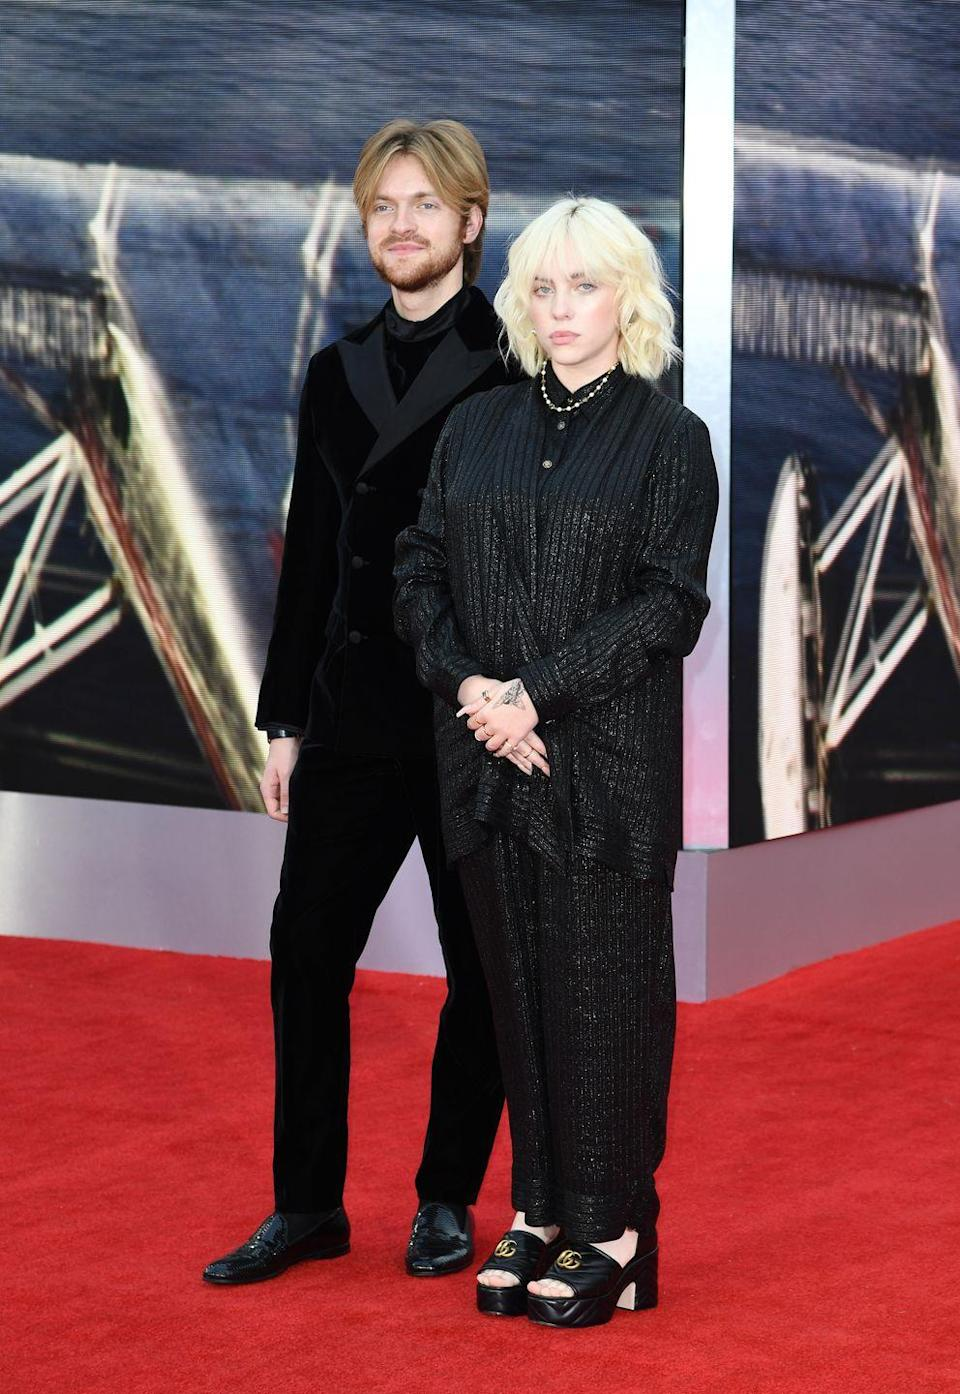 <p>Billie Eilish wore a striped Gucci shirt and trousers with platform shoes to attend the premiere with her brother, Finneas O'Connell, who wore a black velvet Armani suit and a Cartier watch. The pair wrote and performed the film's soundtrack. </p>